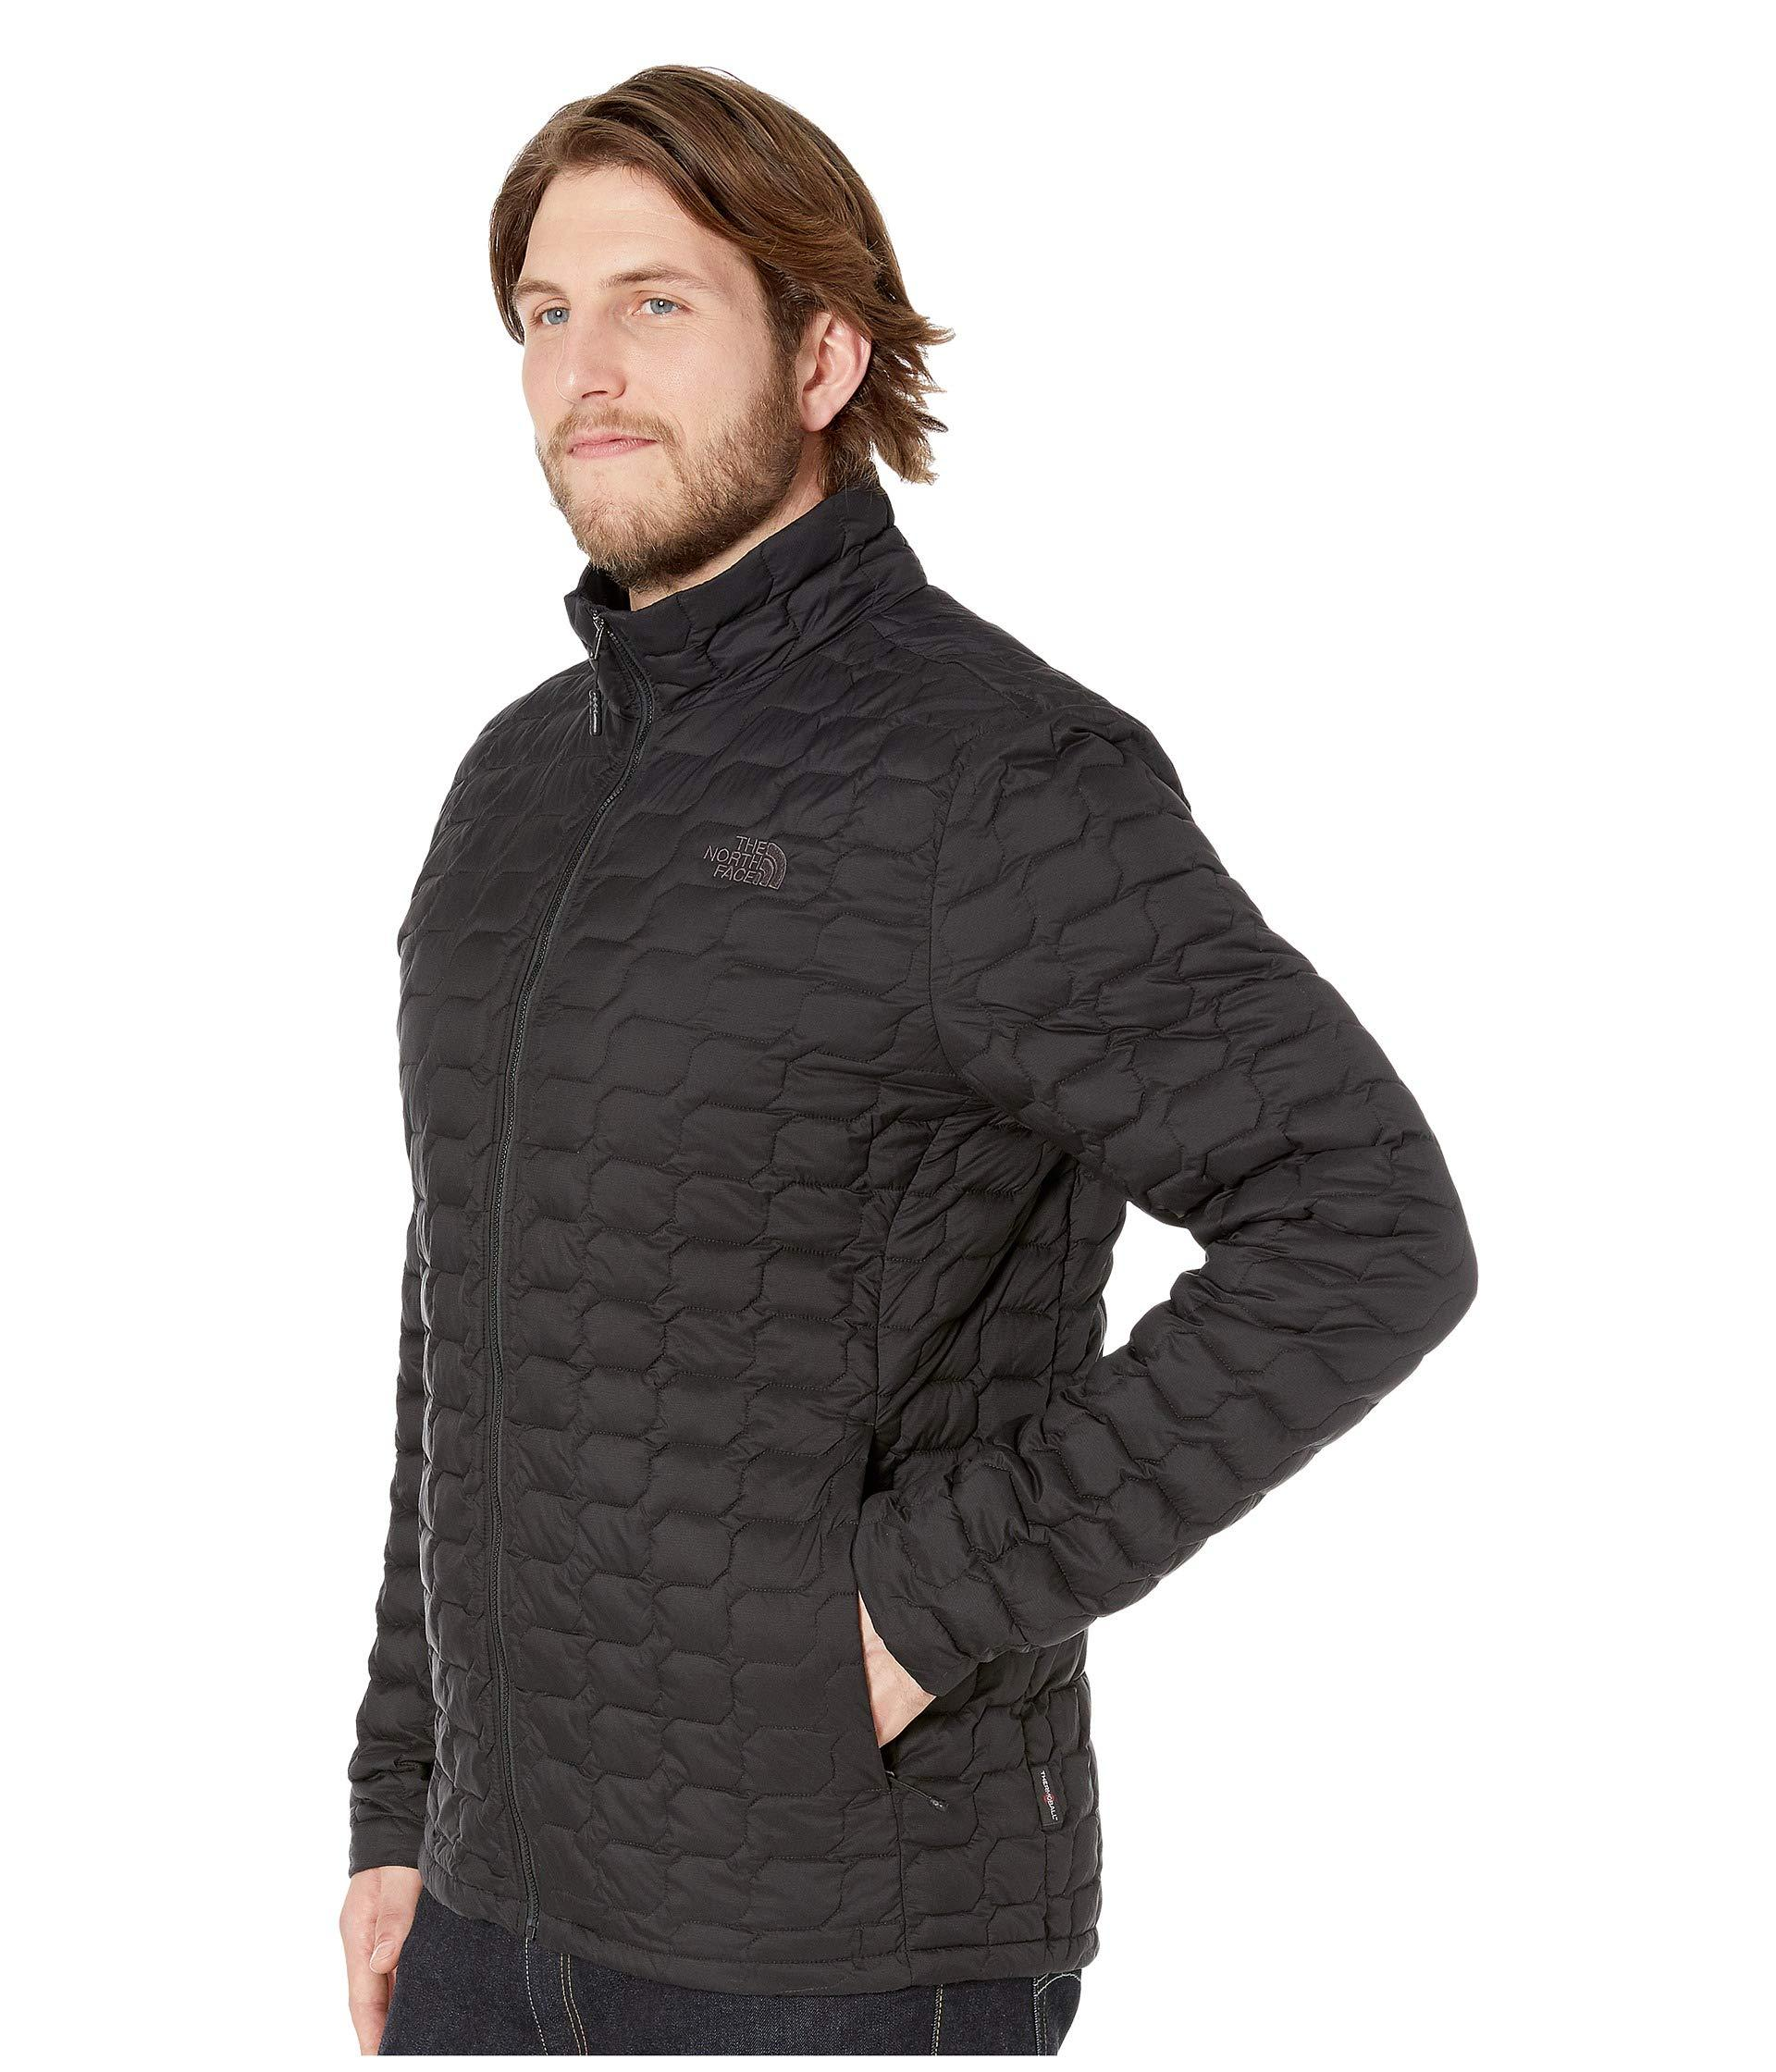 Lyst - The North Face Thermoball Jacket - Tall (urban Navy Matte mid Grey)  Men s Coat in Black for Men 71e10cefa